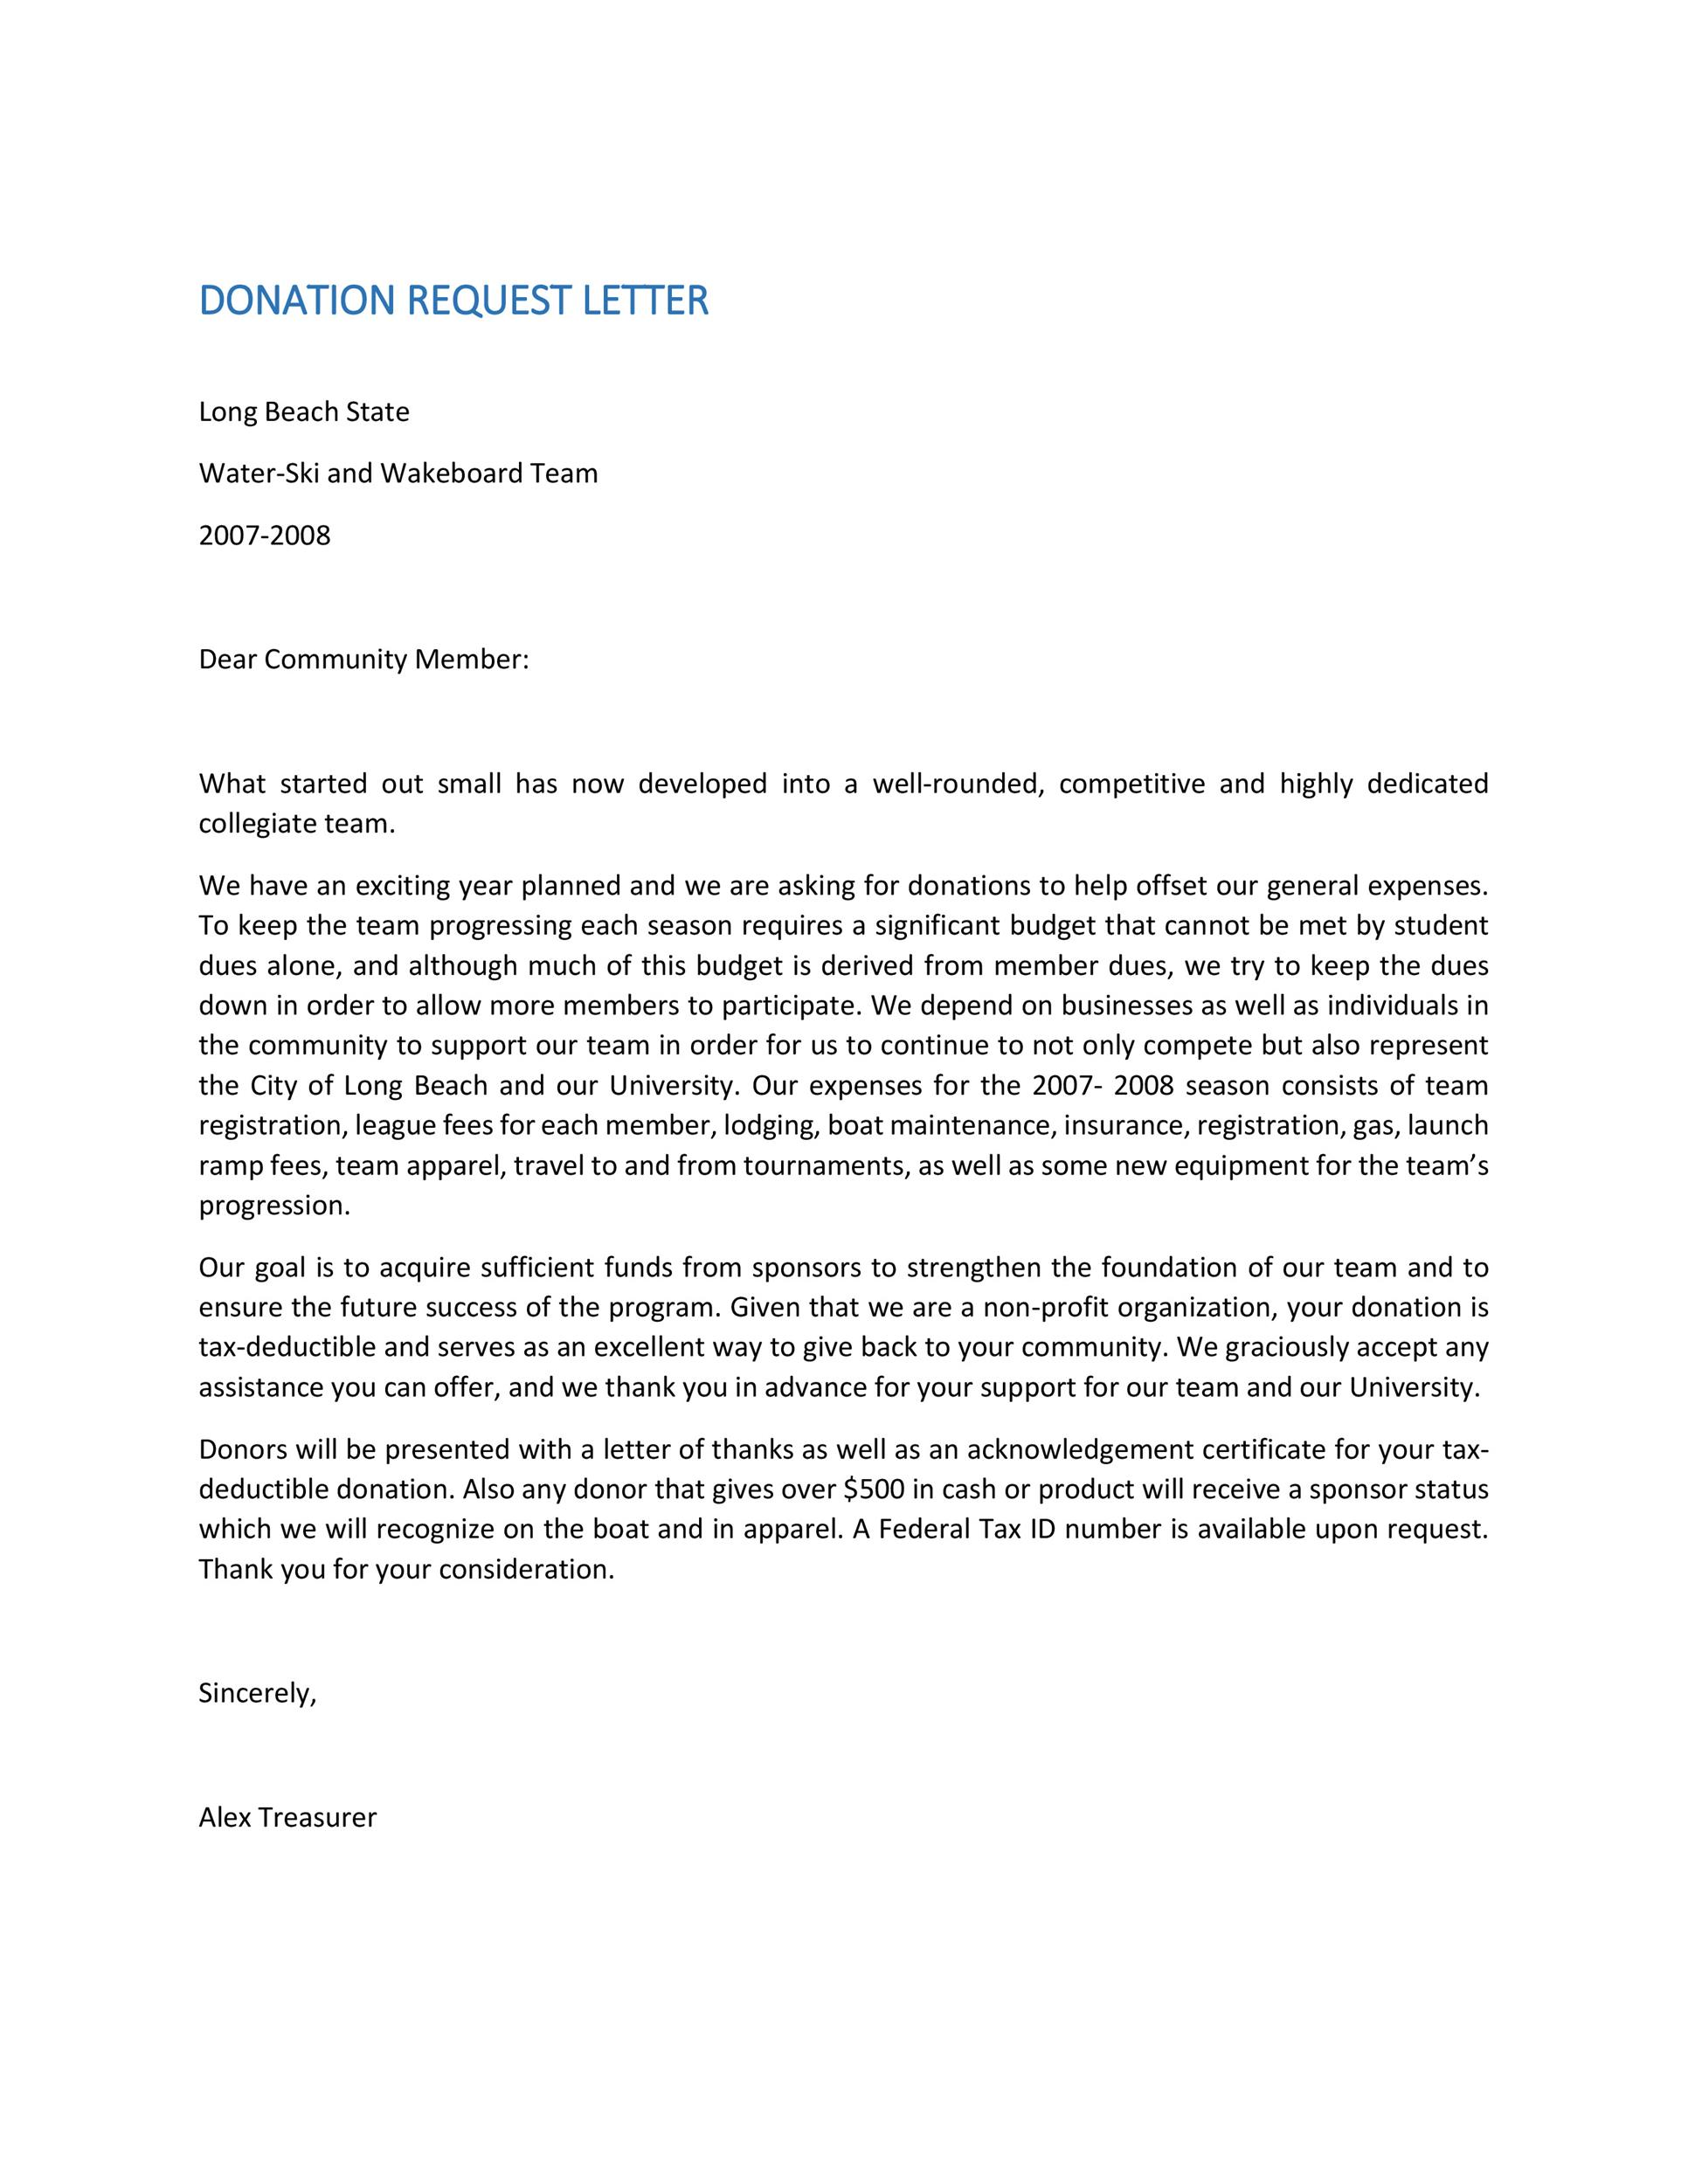 letter asking for donations for nonprofit 43 free donation request letters amp forms ᐅ template lab 24028 | Donation Request Letter 33